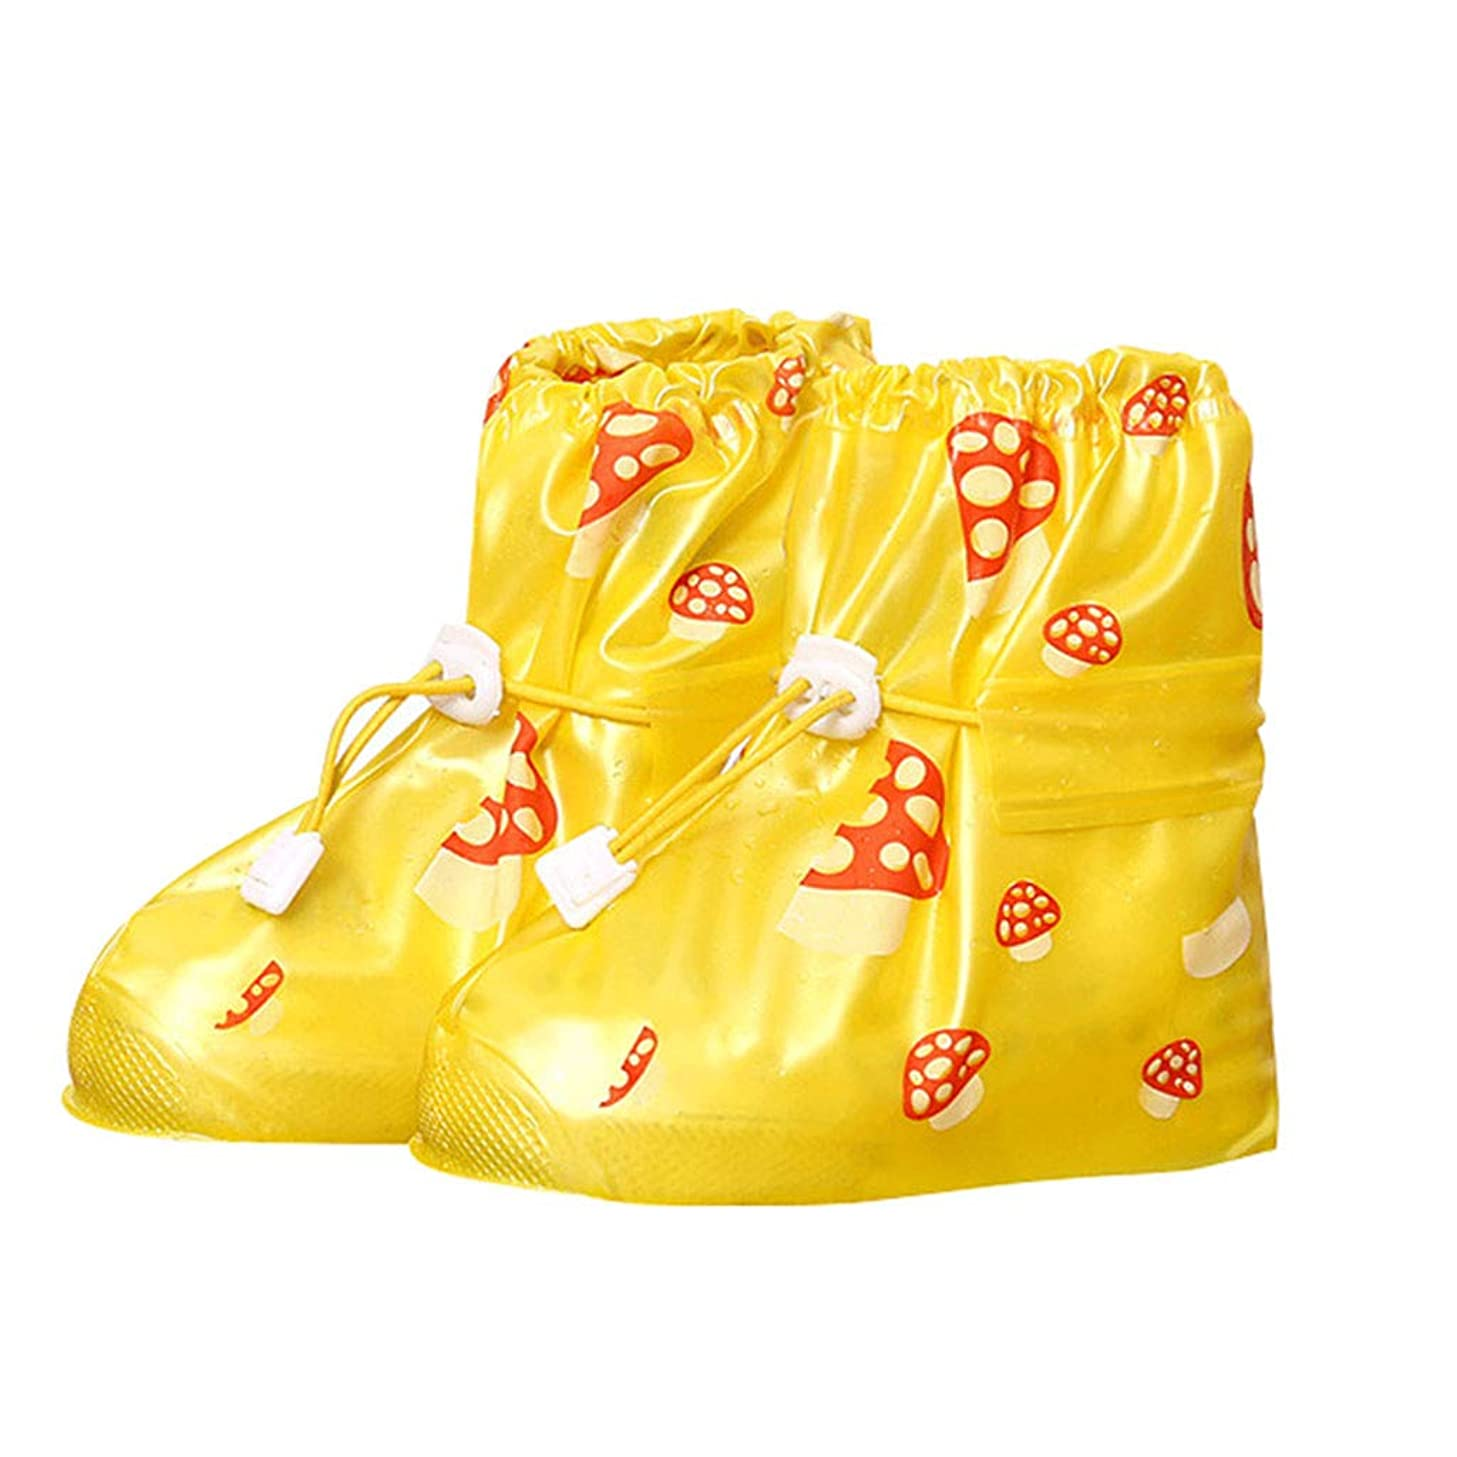 Sttech1 Rain Shoes Cover for Kids Children's Waterproof Slip-Resistant Snow Cycling Overshoes for Boys and Girls qnxlxv1646427